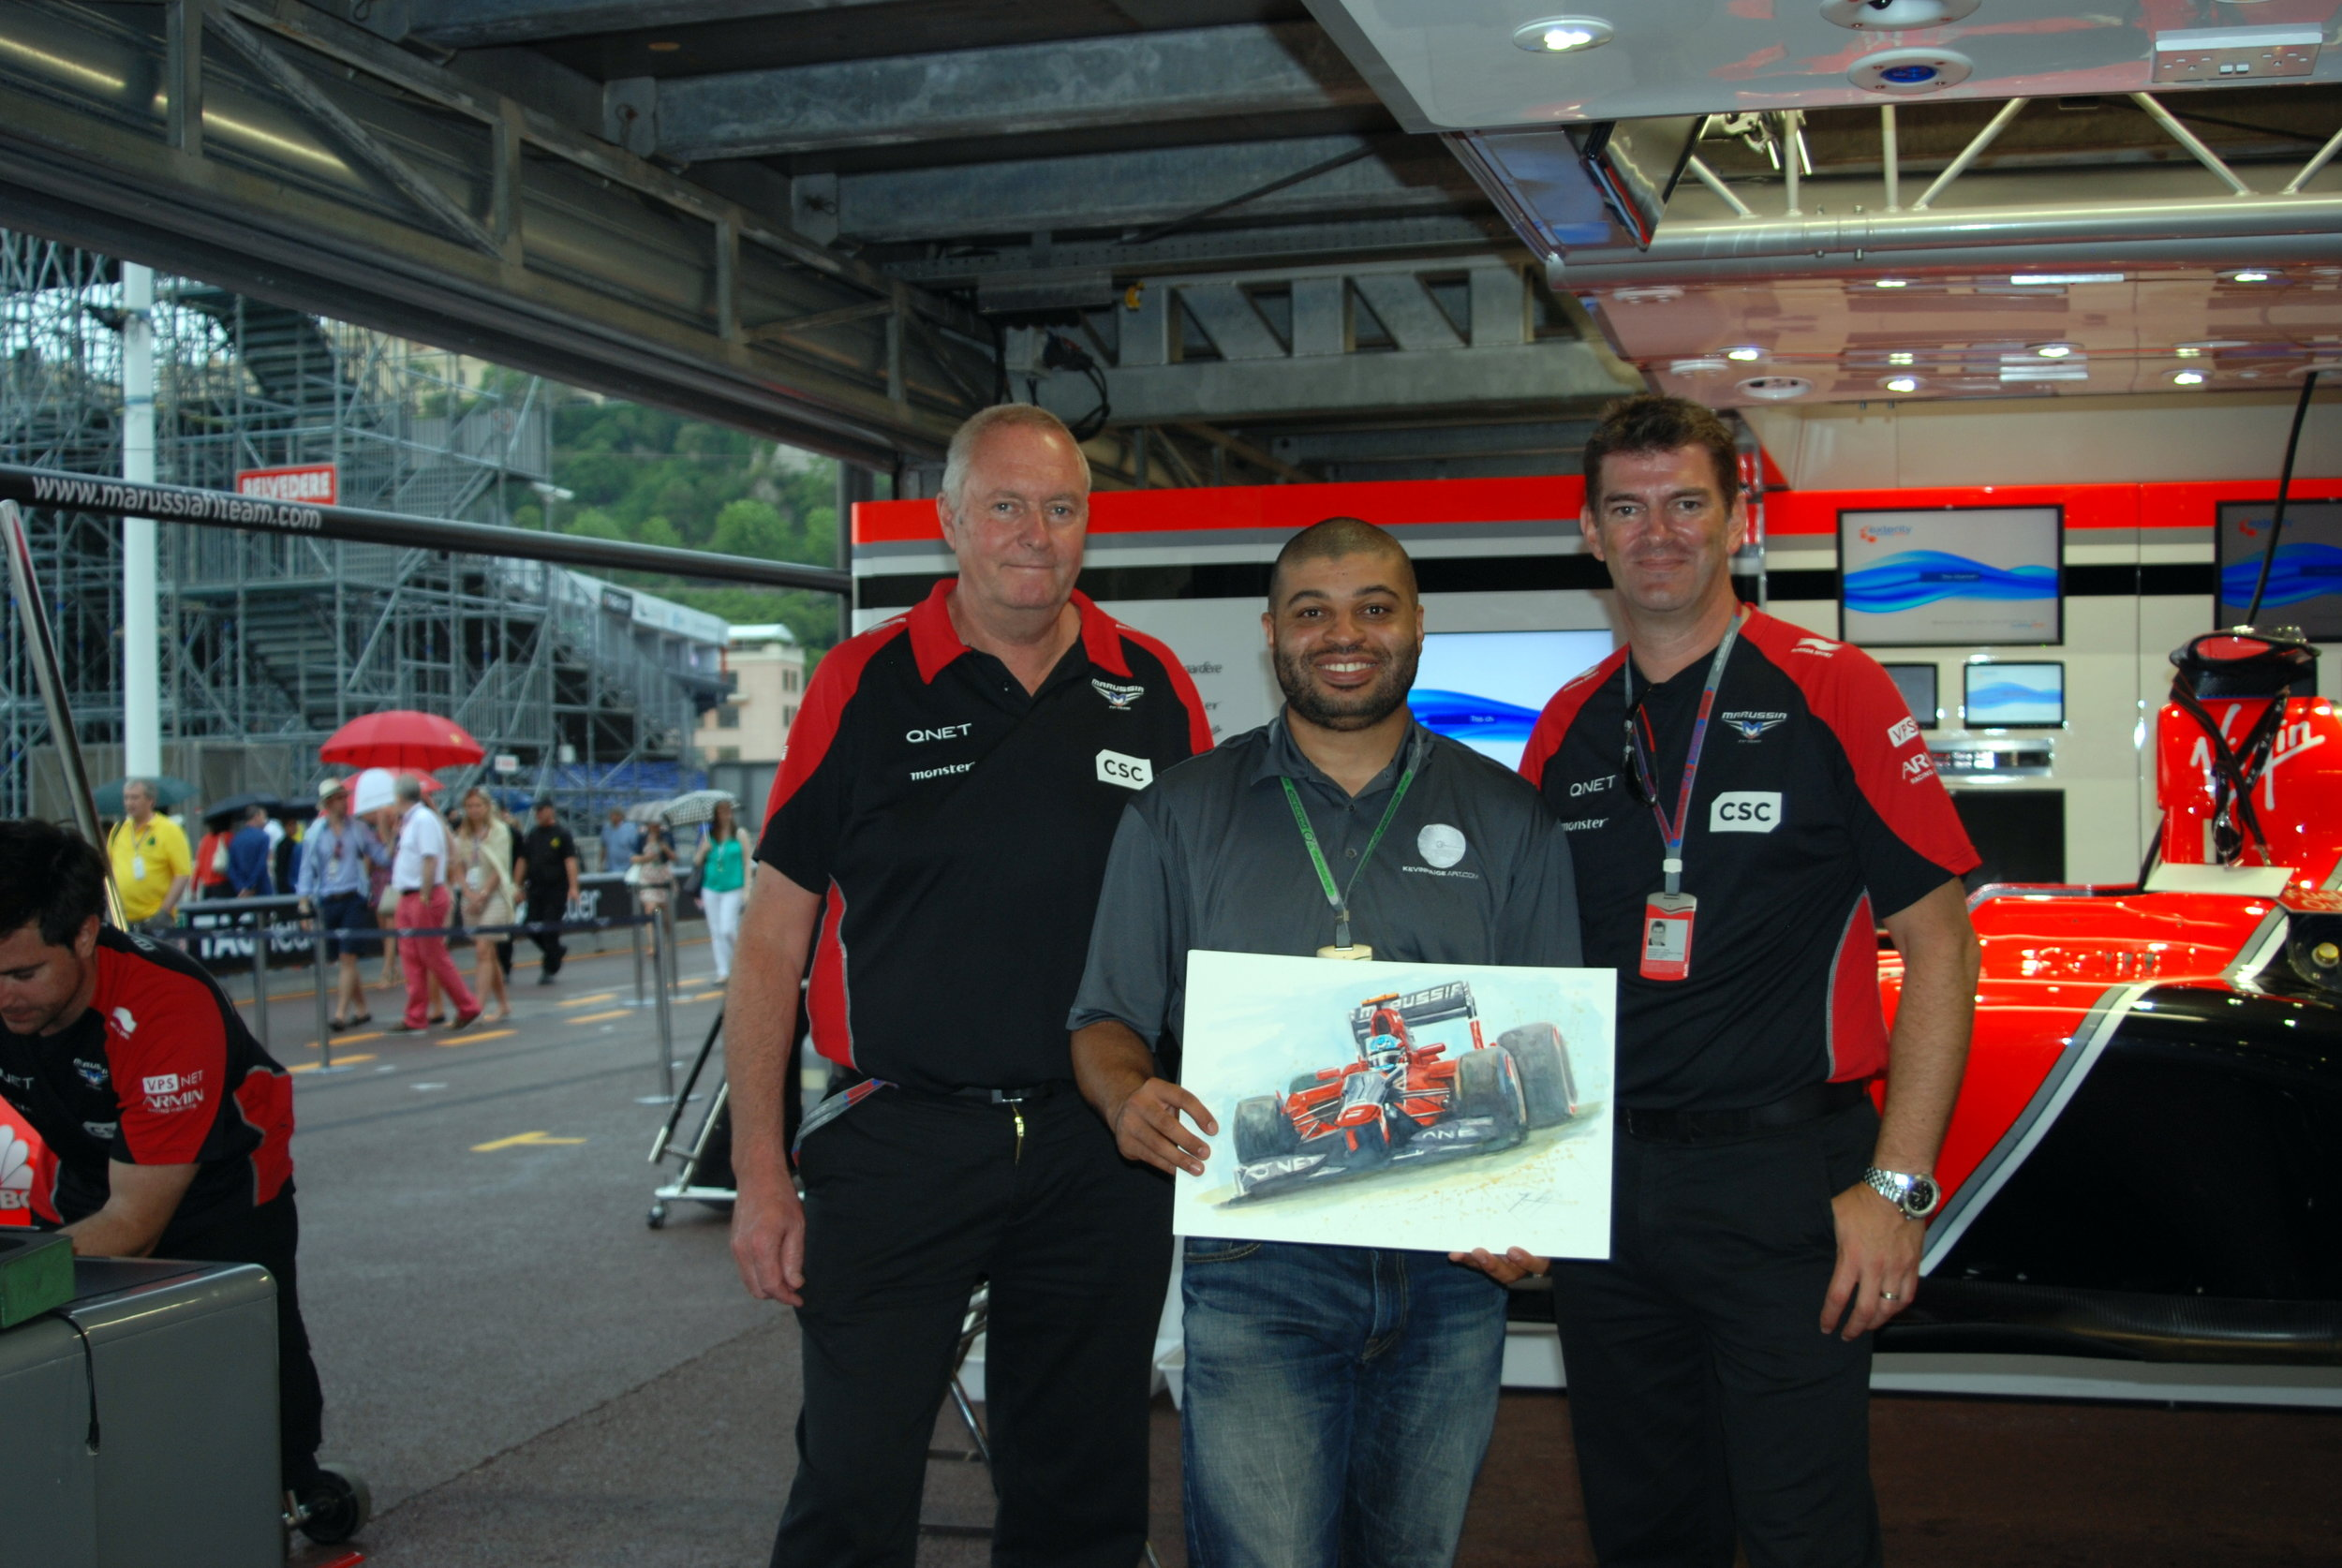 With the Marussia team in Monaco